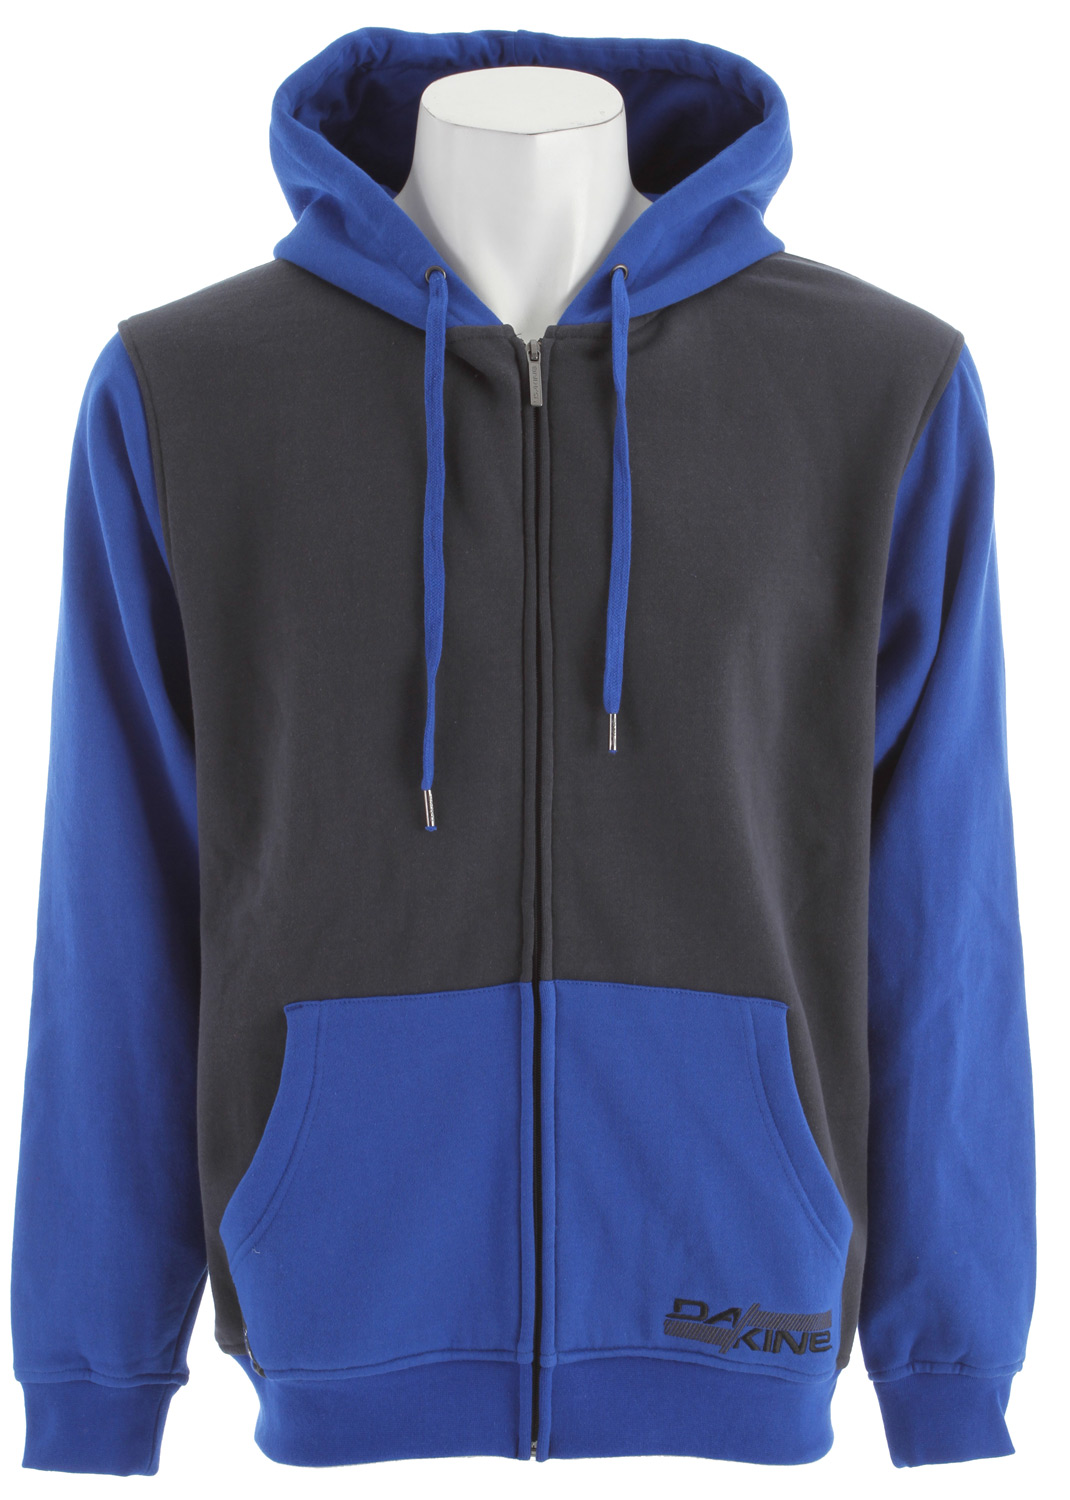 Surf Key Features of the Dakine Bunker Hoodie: 80% cotton/20% polyester/330gm - $38.95